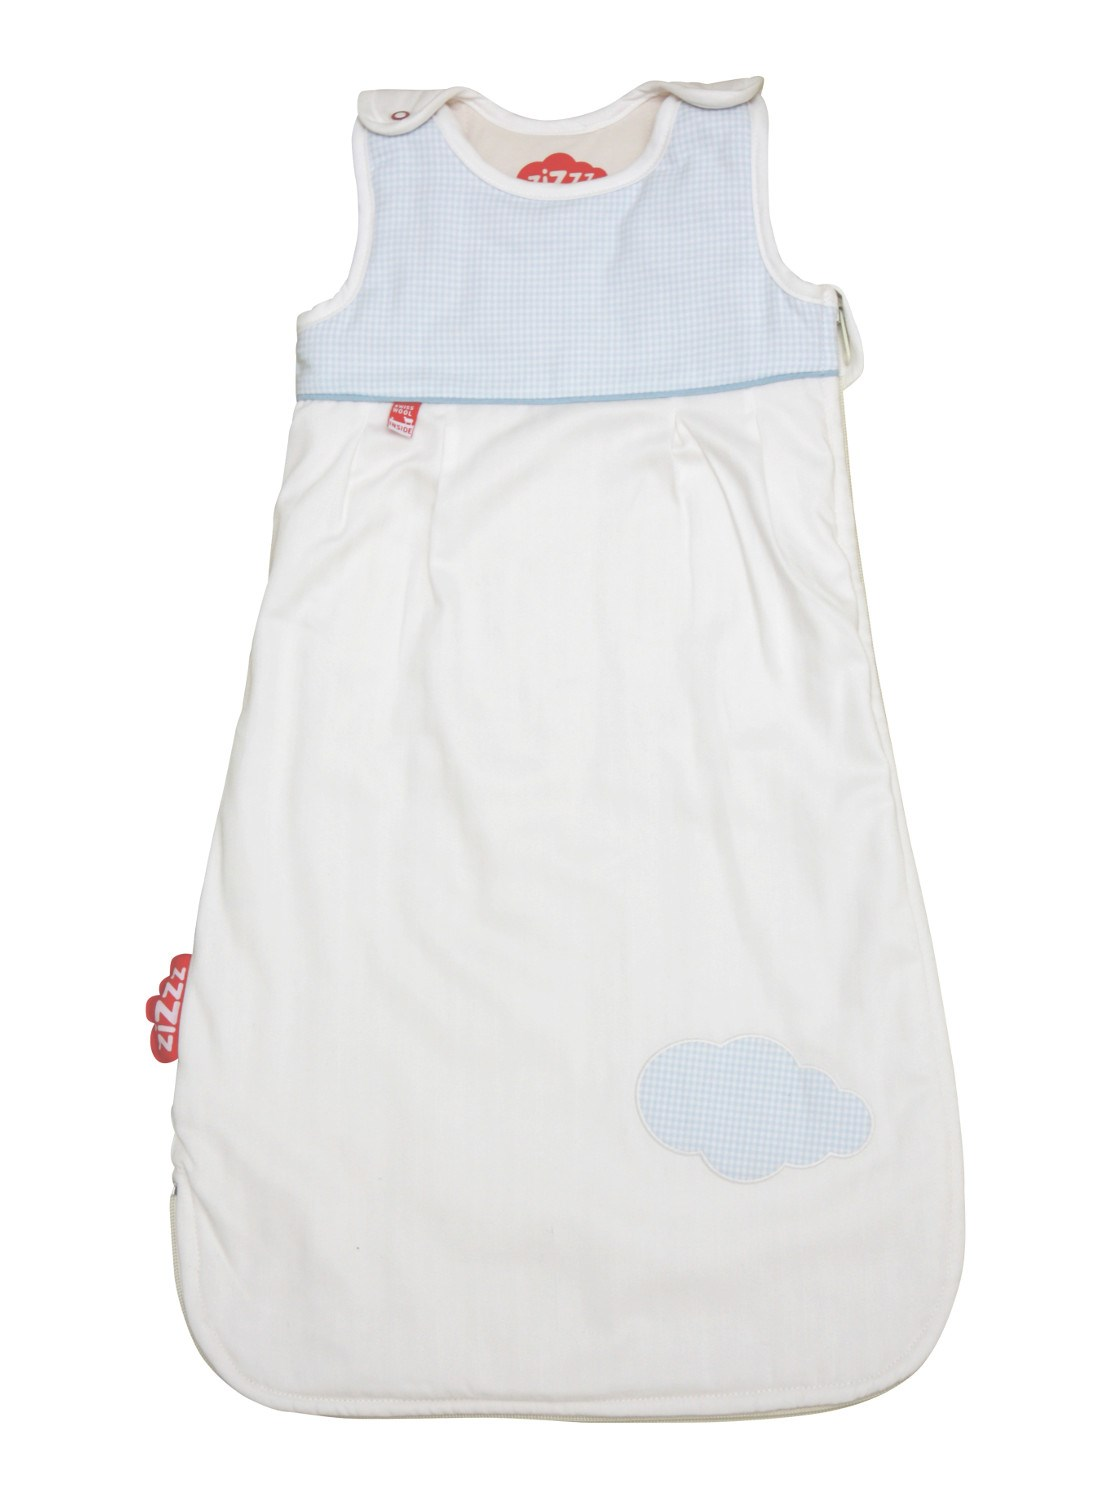 Baby sleeping bag Vichy Blue 0-6 Months (70cm)